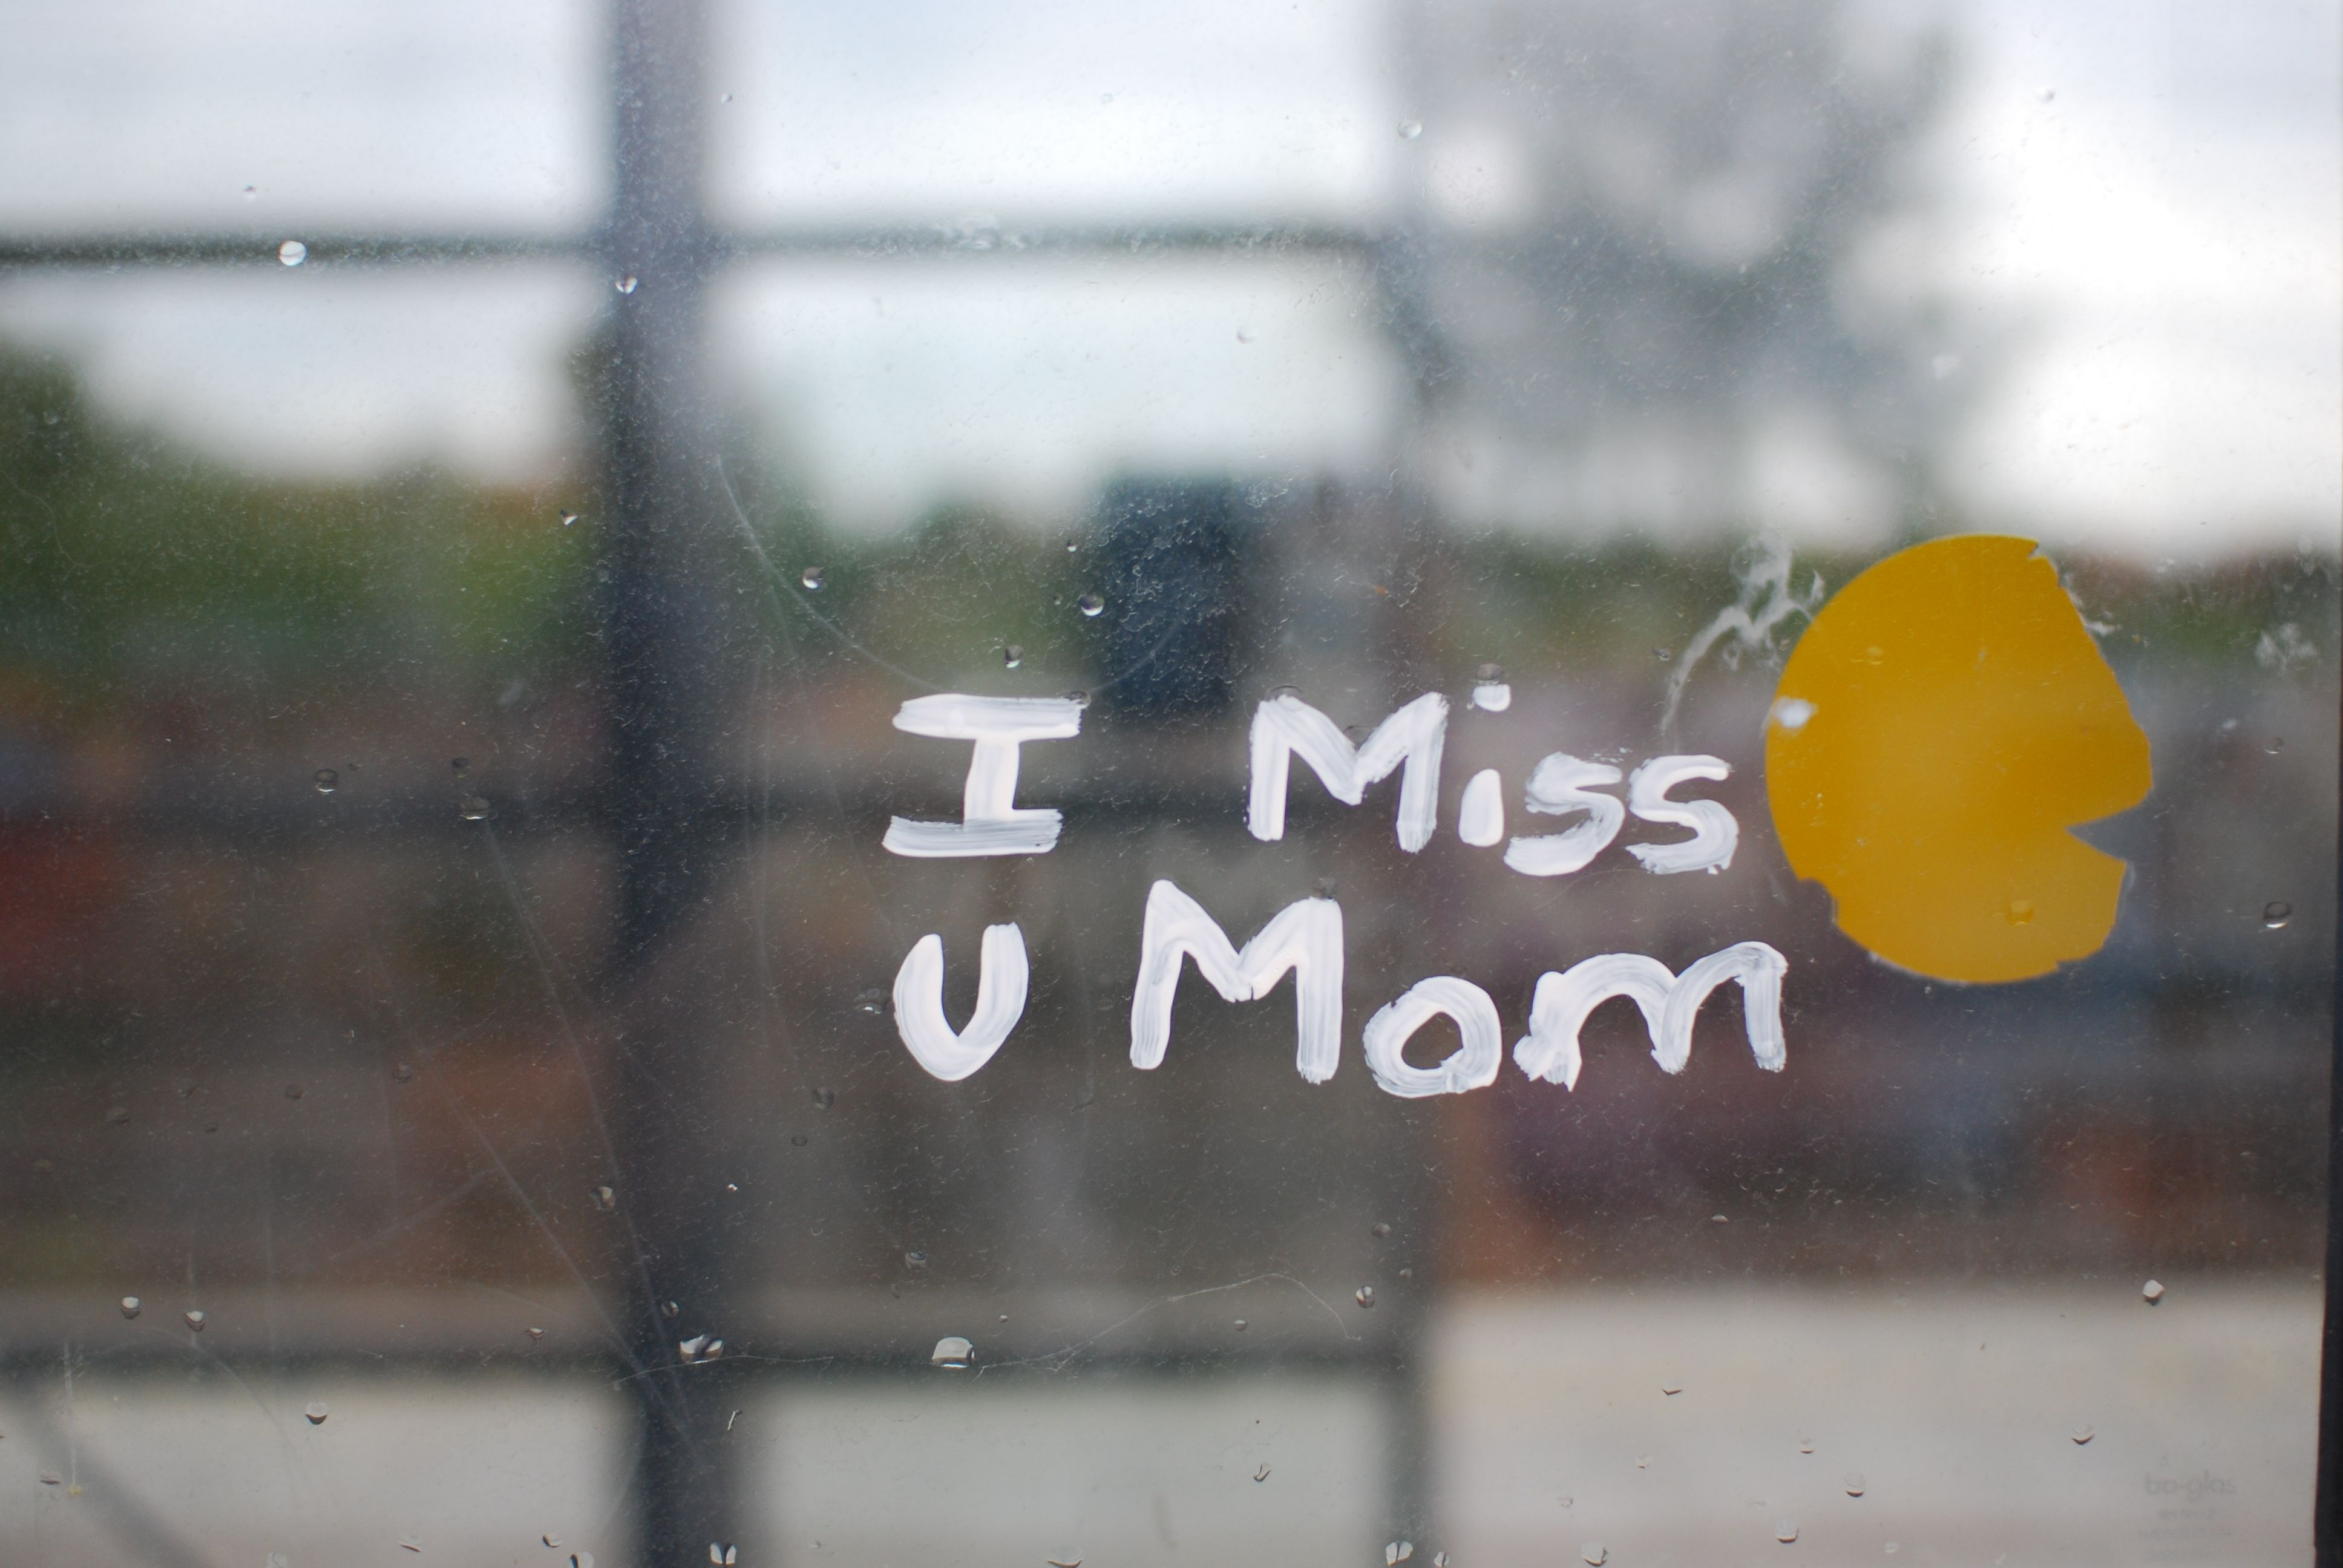 Single On Valentines Mother S Day Quotes God 2014 Miss U Mom Hd Wallpapers Miss You Wallpapers Hd Wallpaper I Miss My Mom Miss You Mom I Miss You Wallpaper